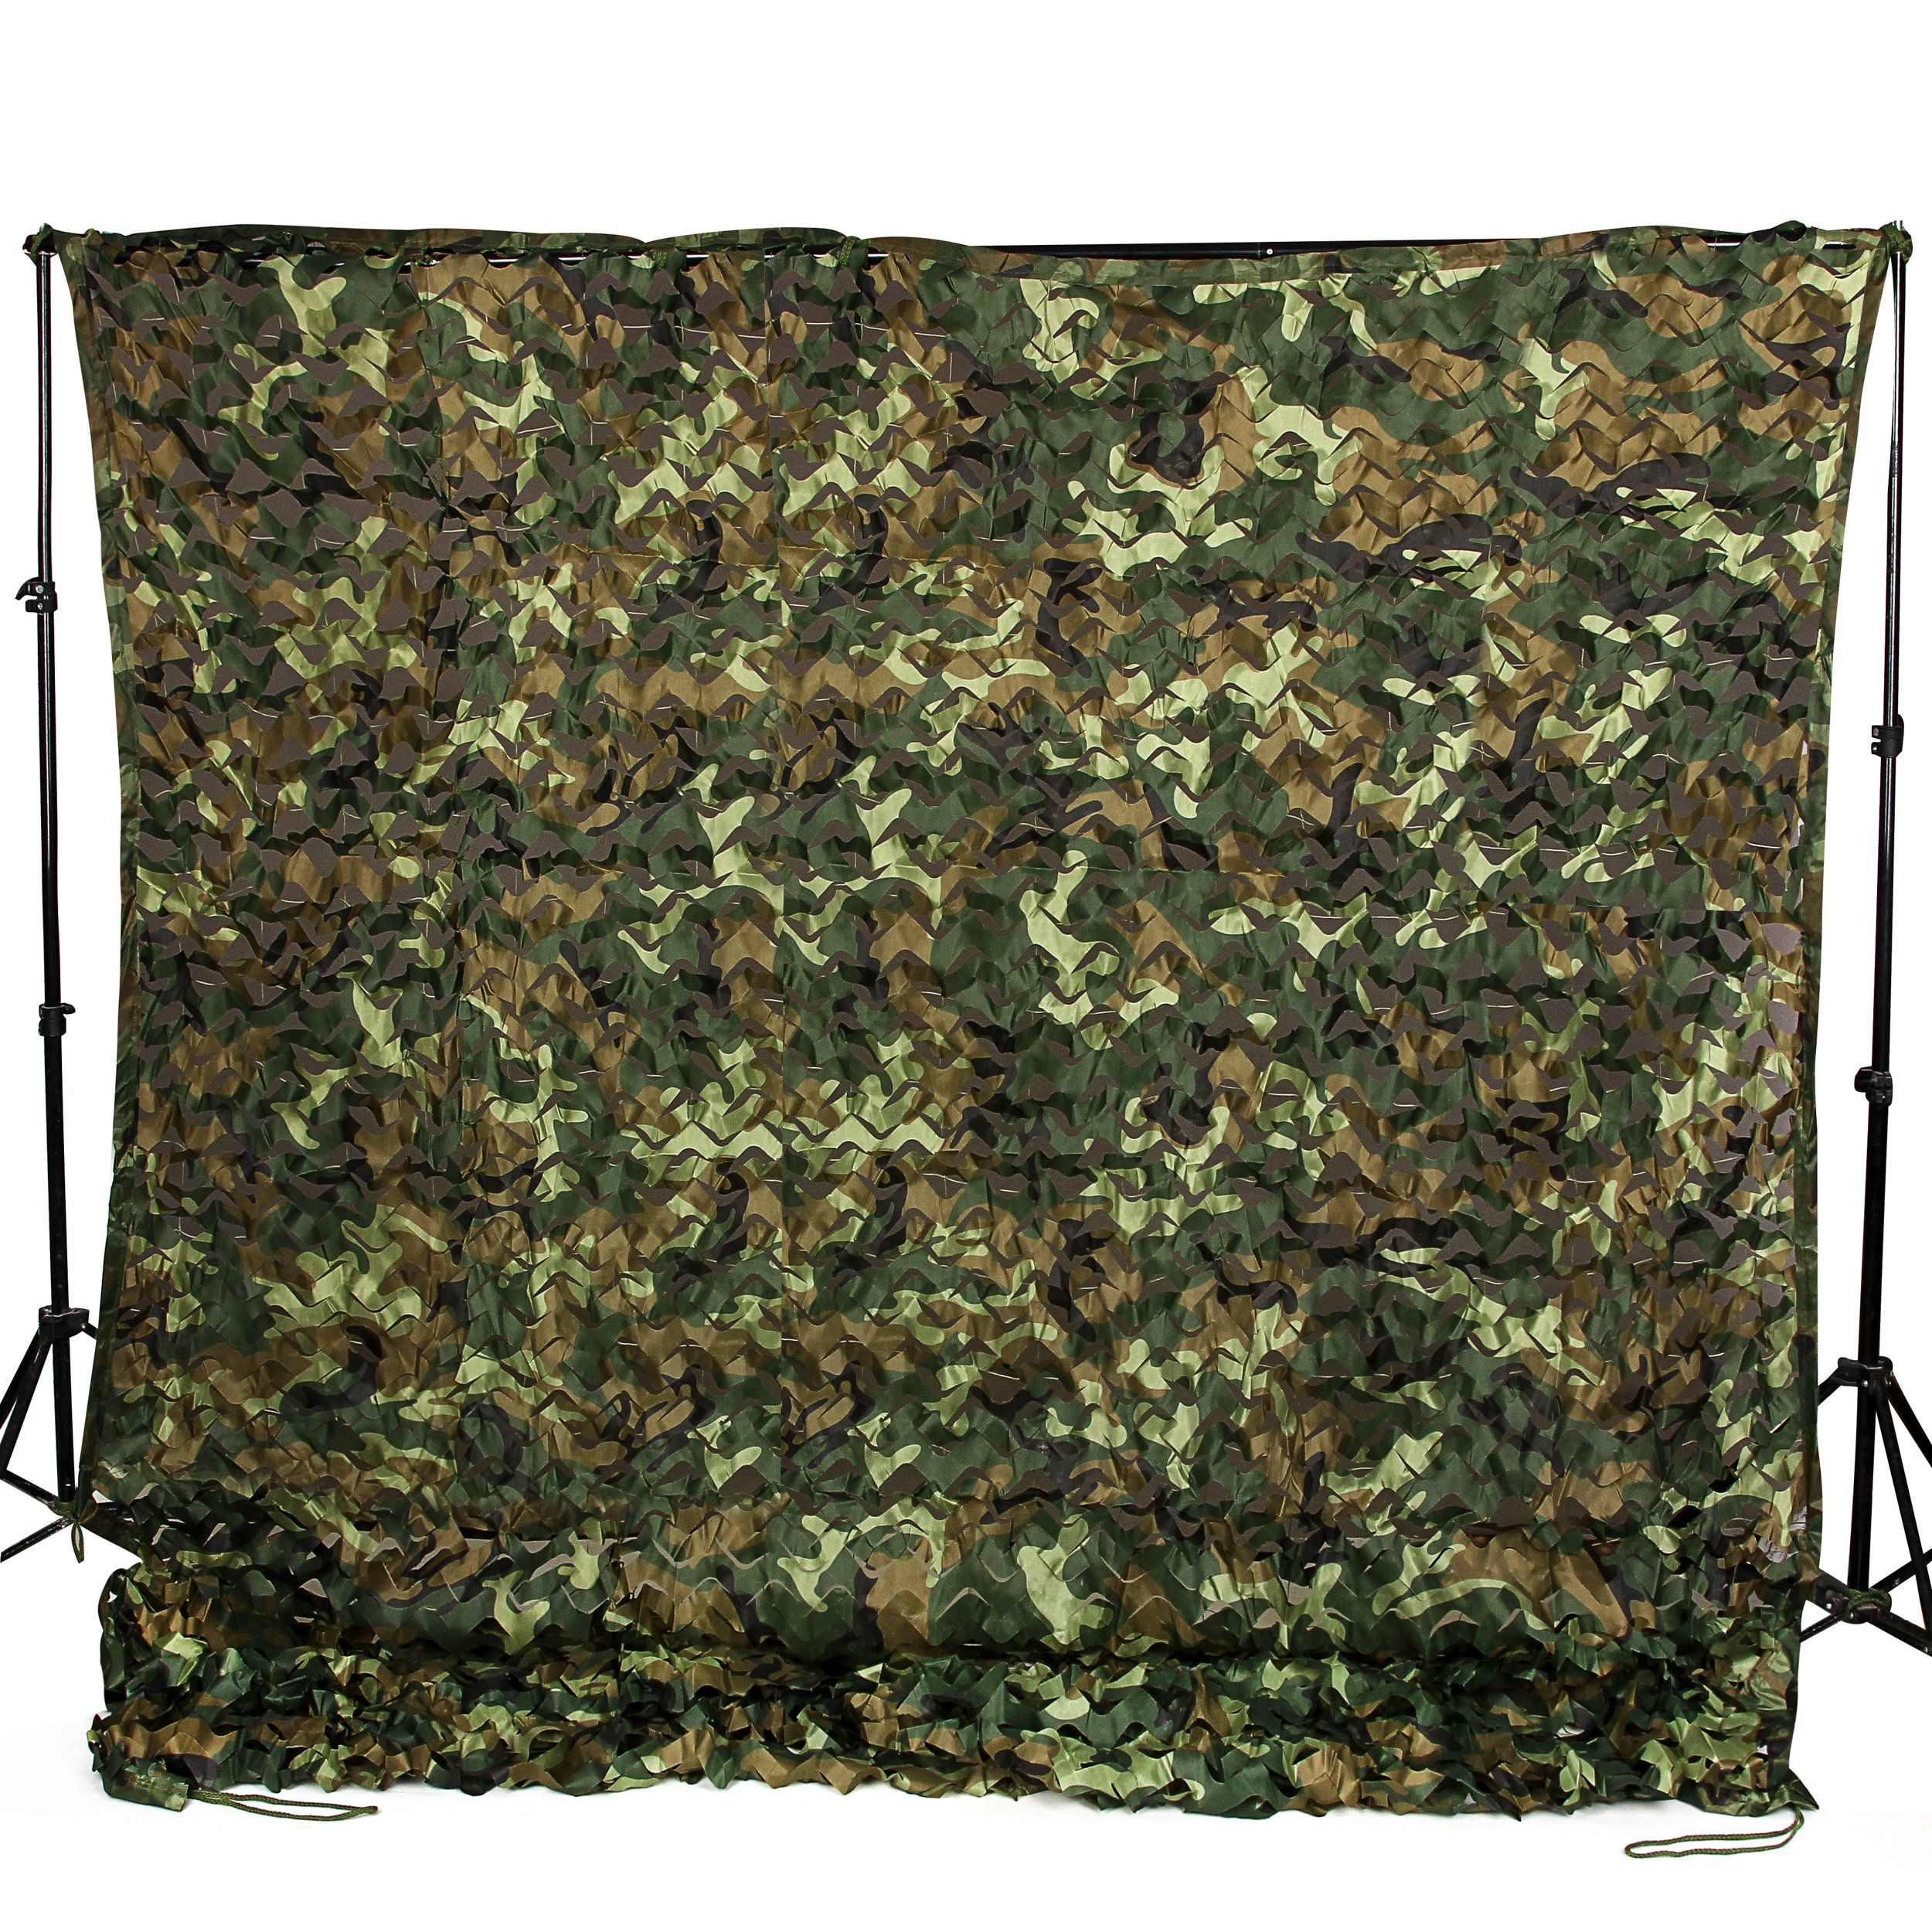 Ginsco 6.5ft x 20ft 2mx6m Woodland Camouflage Netting Desert Camo Net for Camping Military Hunting Shooting Blind Watching Hide Party Decorations (6.5x20ft (2Mx6M)) by Ginsco